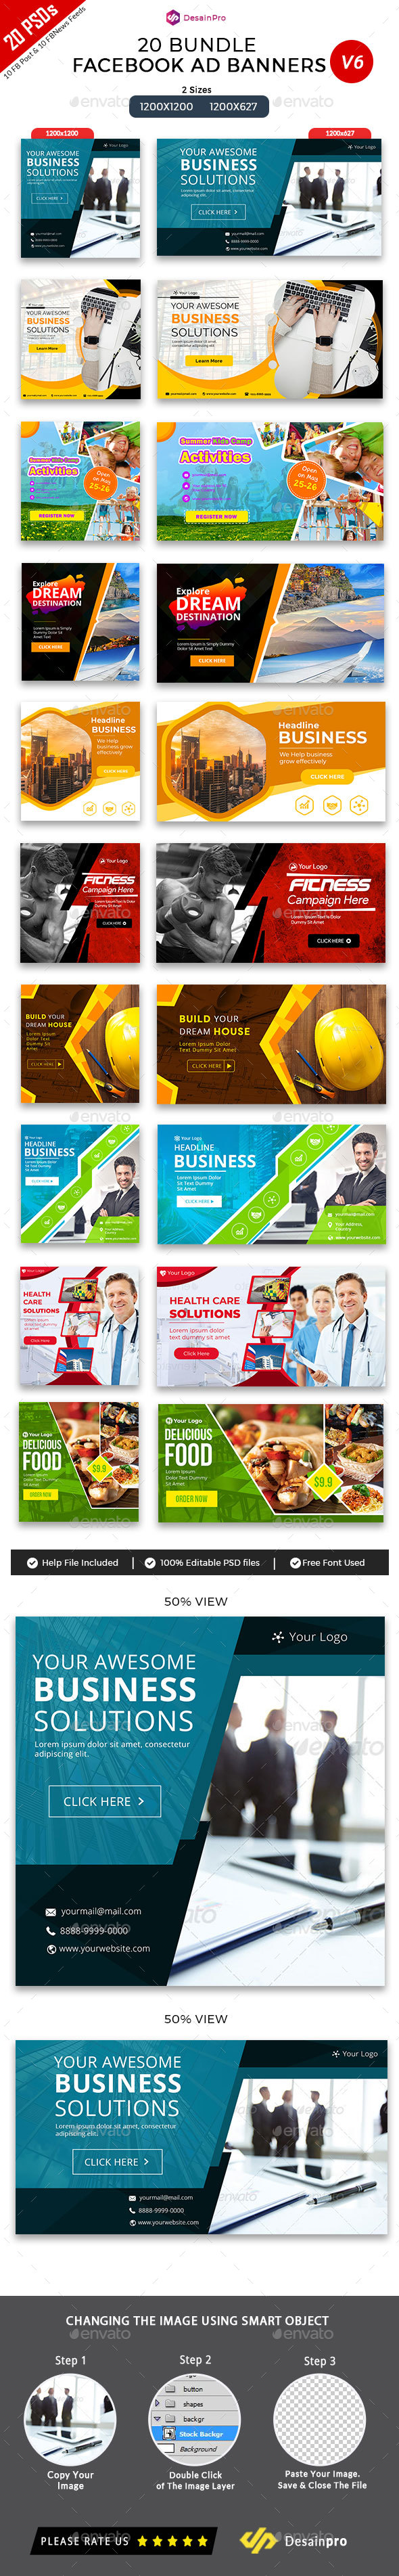 20 Facebook Ad Banners V6 Bundle - AR - Social Media Web Elements